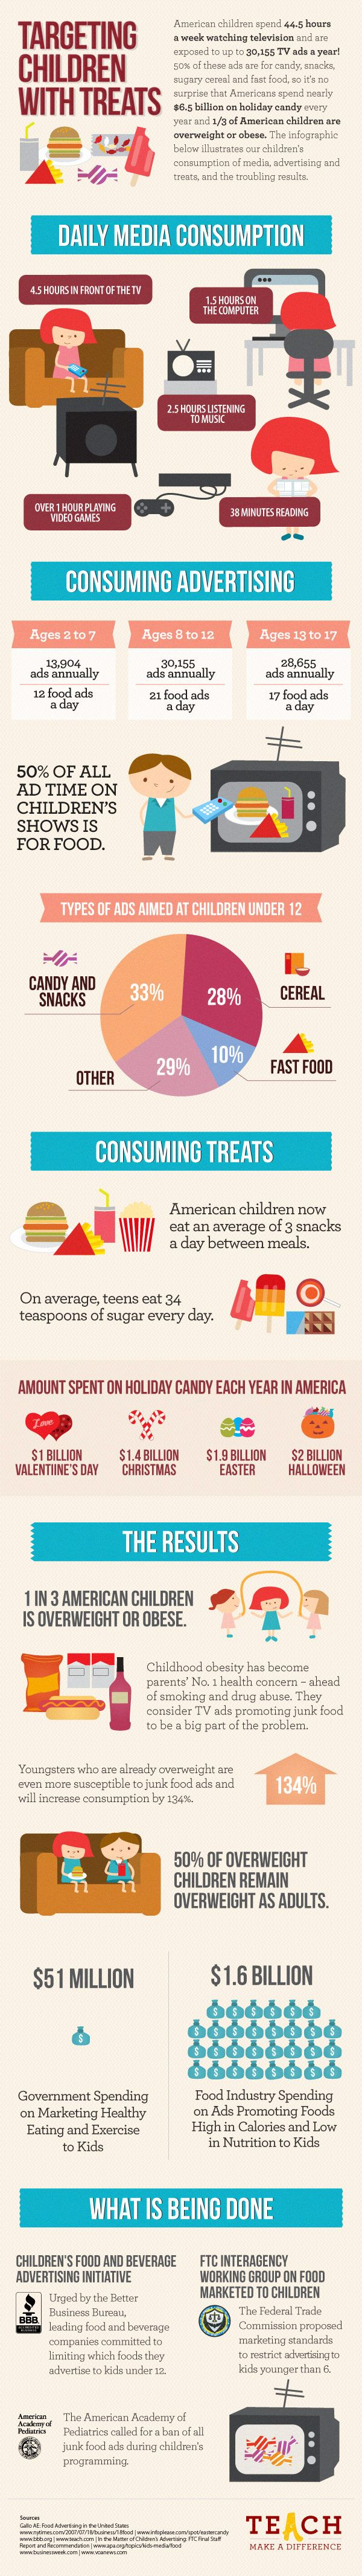 Daily kids media consumption + targeting said demographic with food related advertising = child obesity rates through the roof.